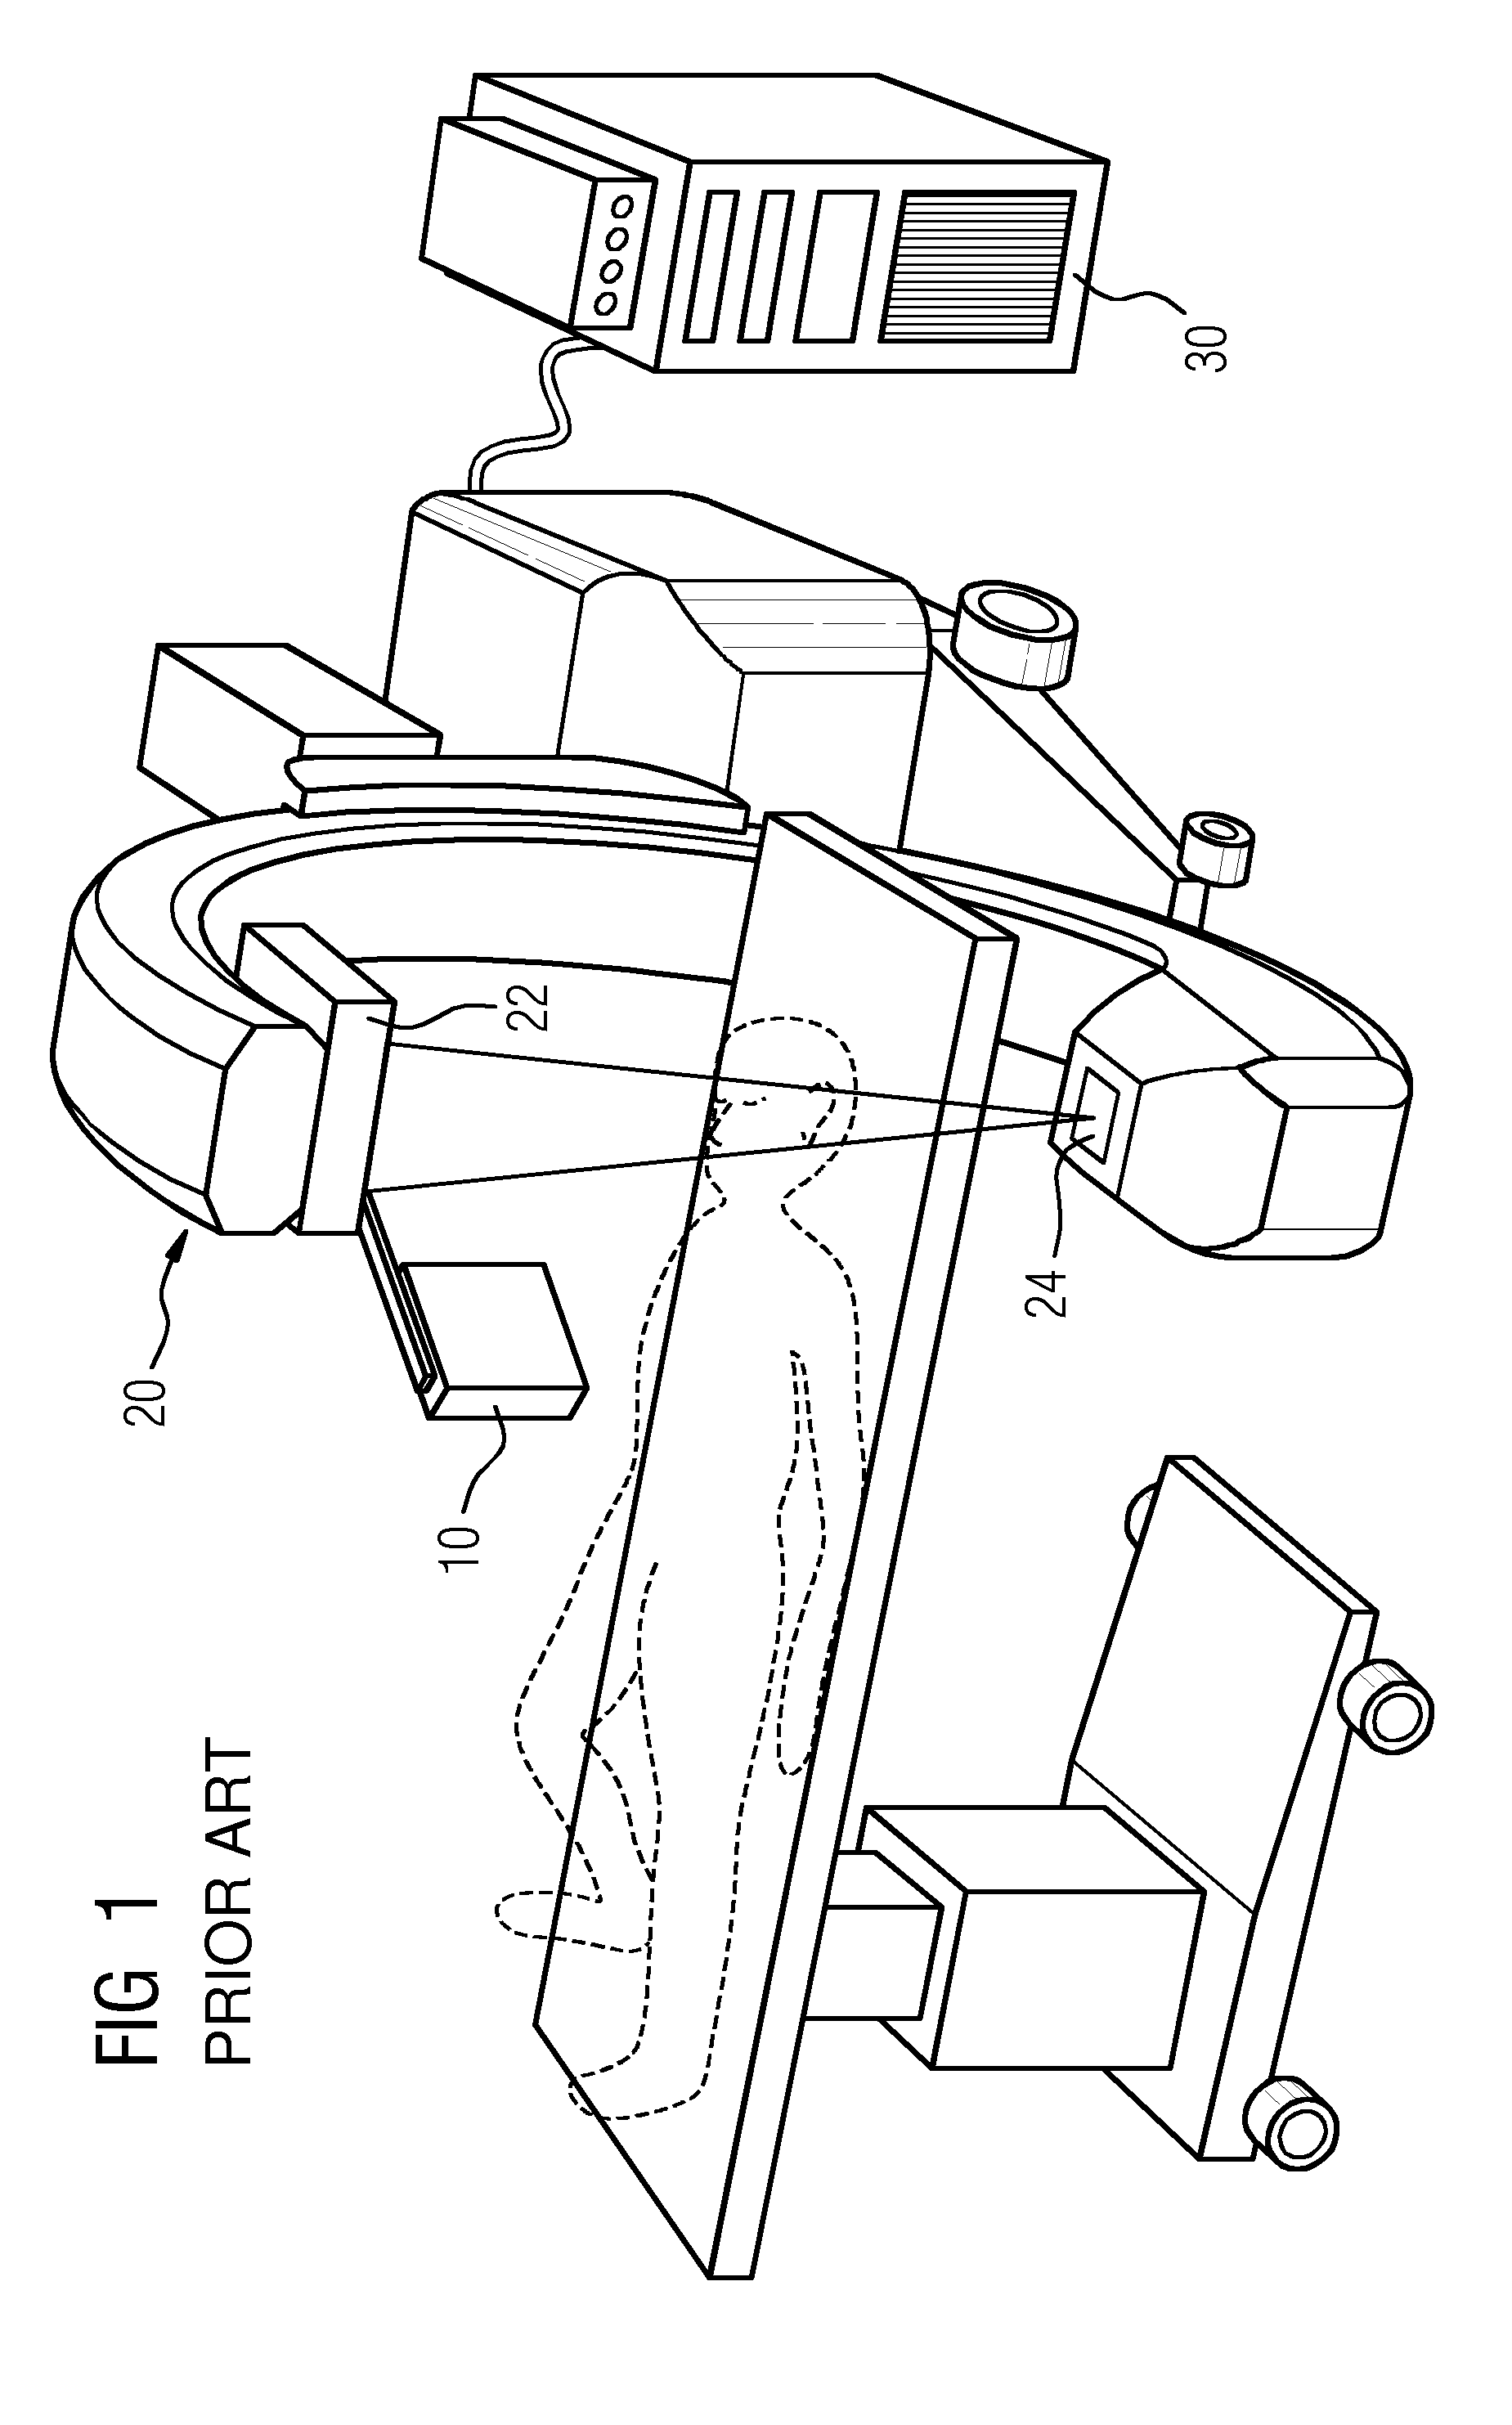 patent us20120289821 - c-arm integrated electromagnetic tracking system